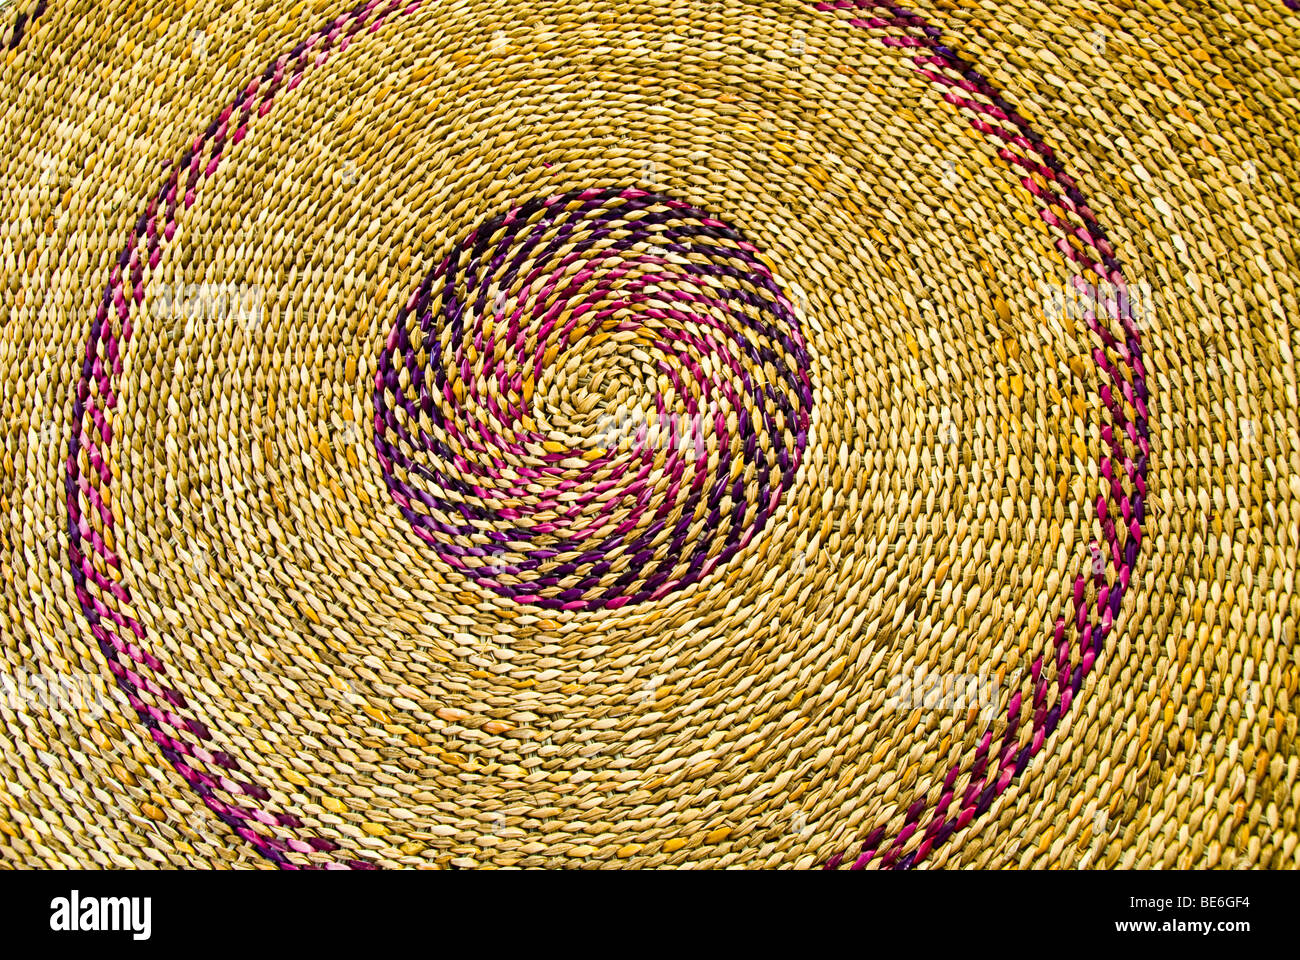 Woven mat in handicrafts market in Puerto Varas, Los Lagos Region (Lake District) of Chile - Stock Image